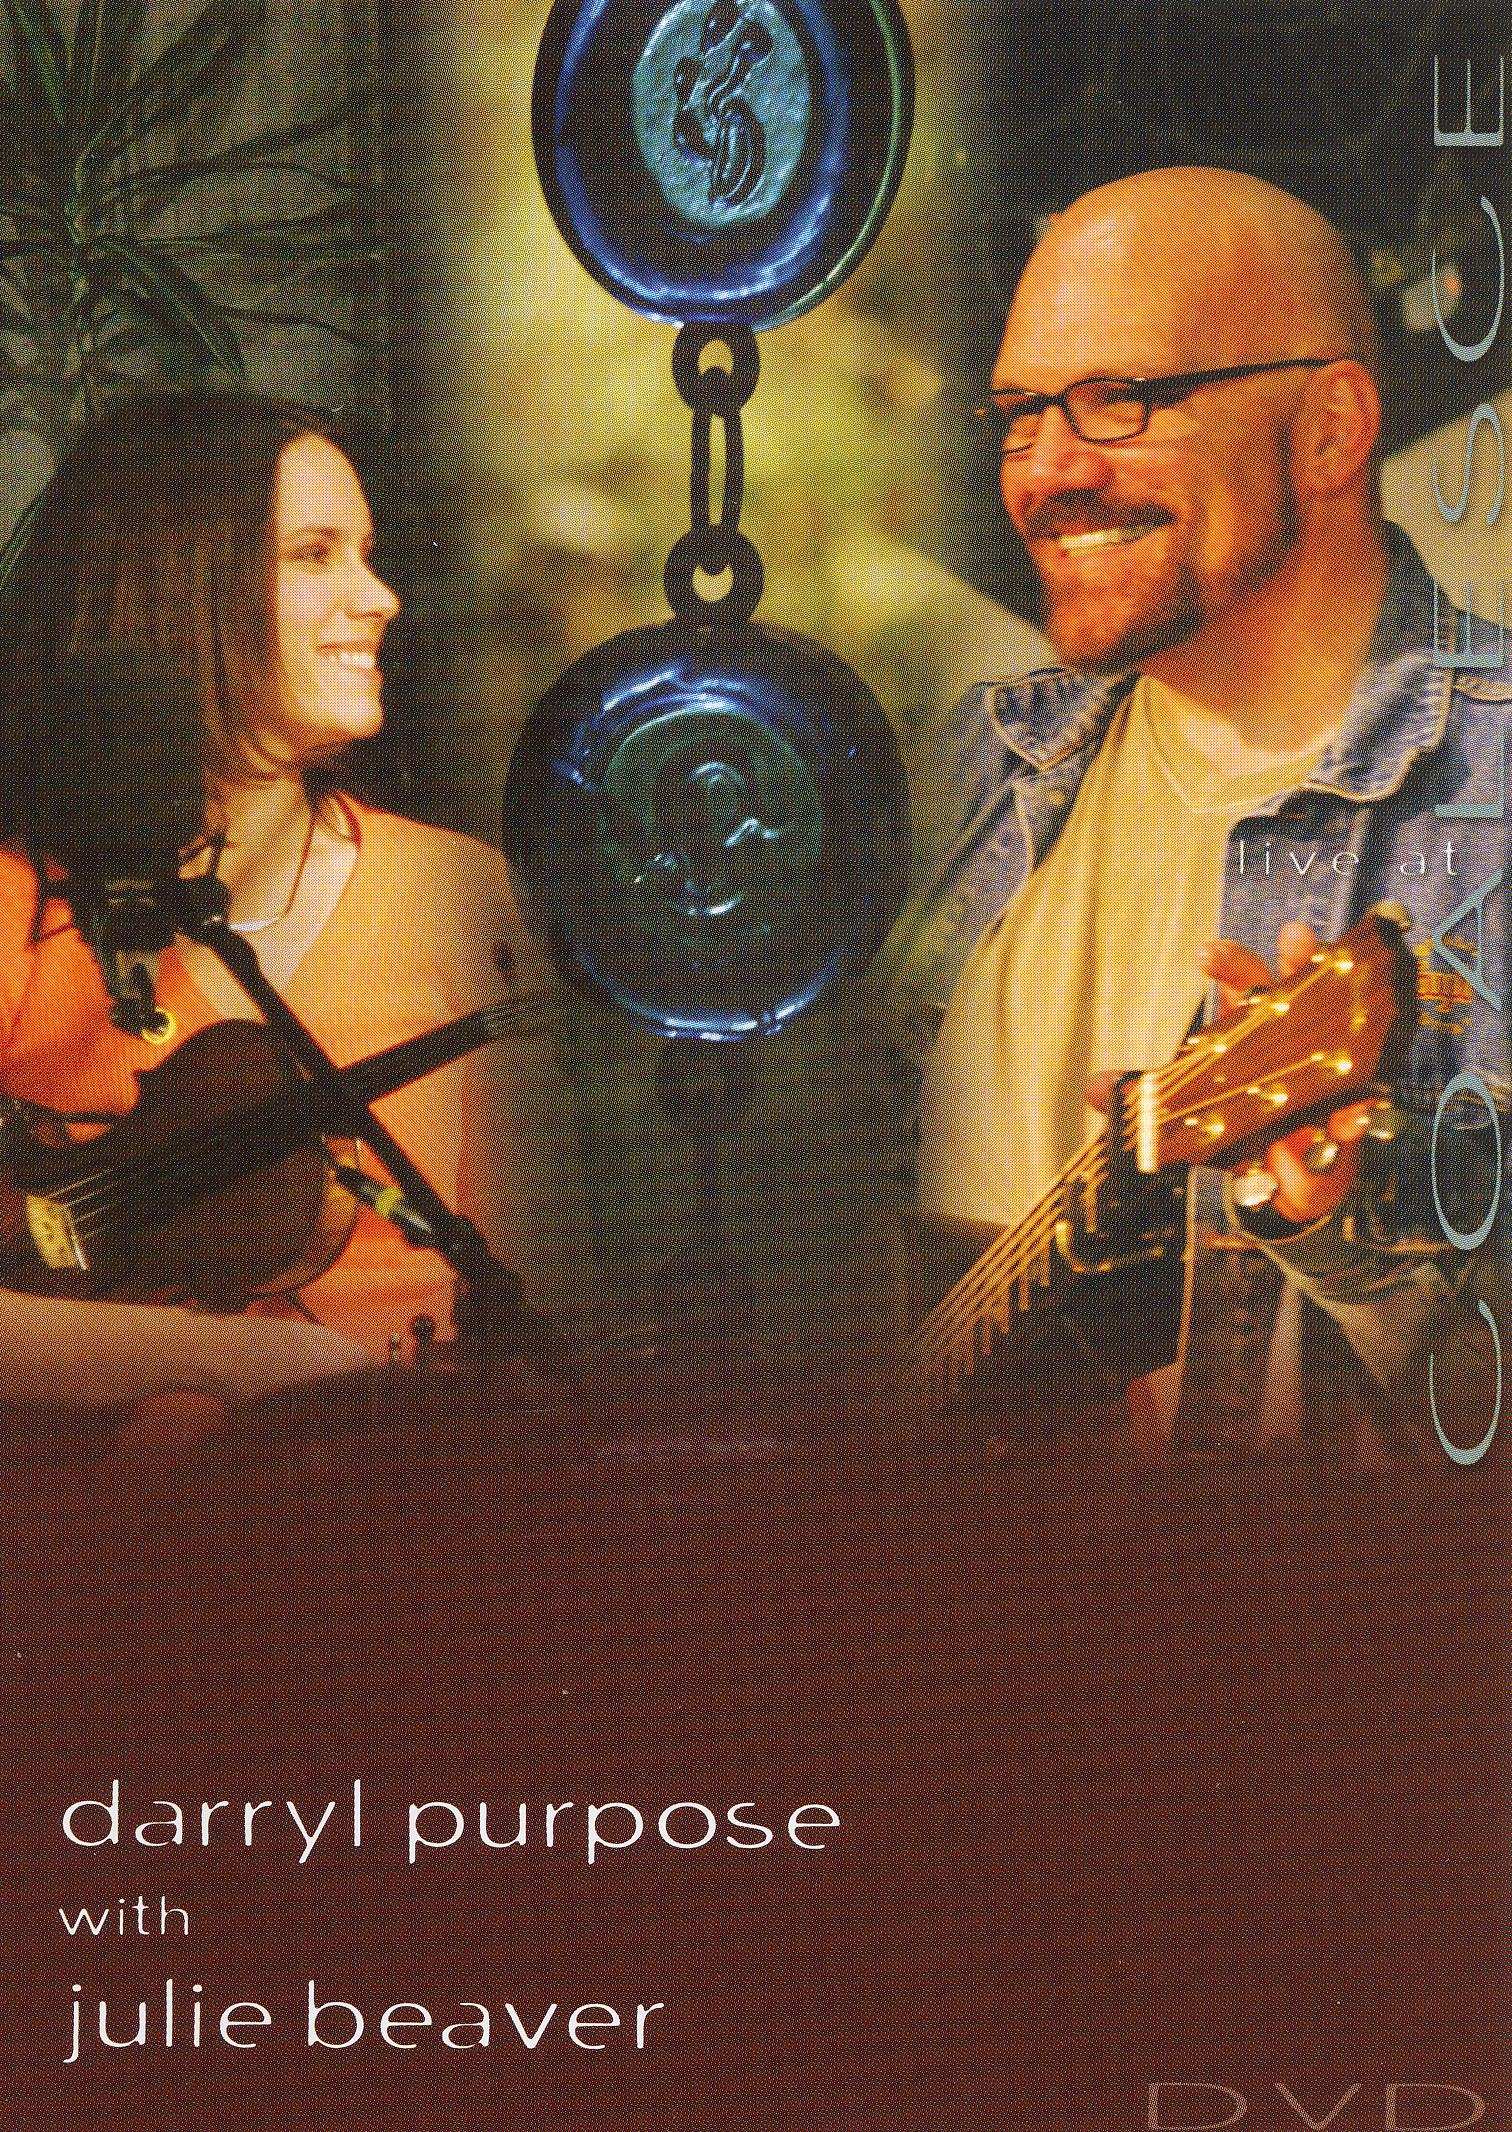 Darryl Purpose with Julie Beaver: Live at Coalesce